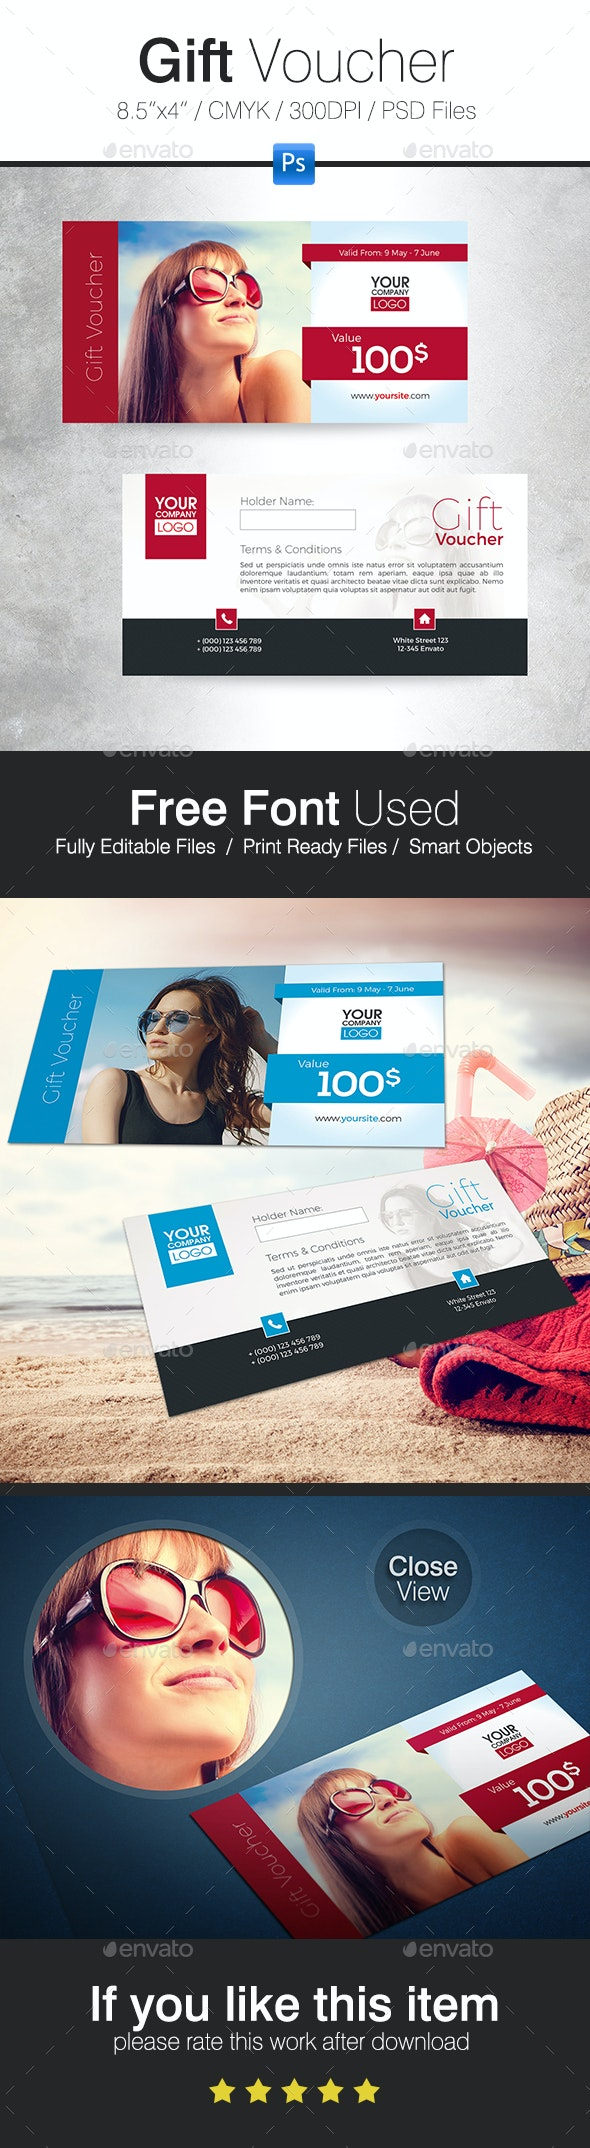 Summer holiday Gift Voucher - Cards & Invites Print Templates